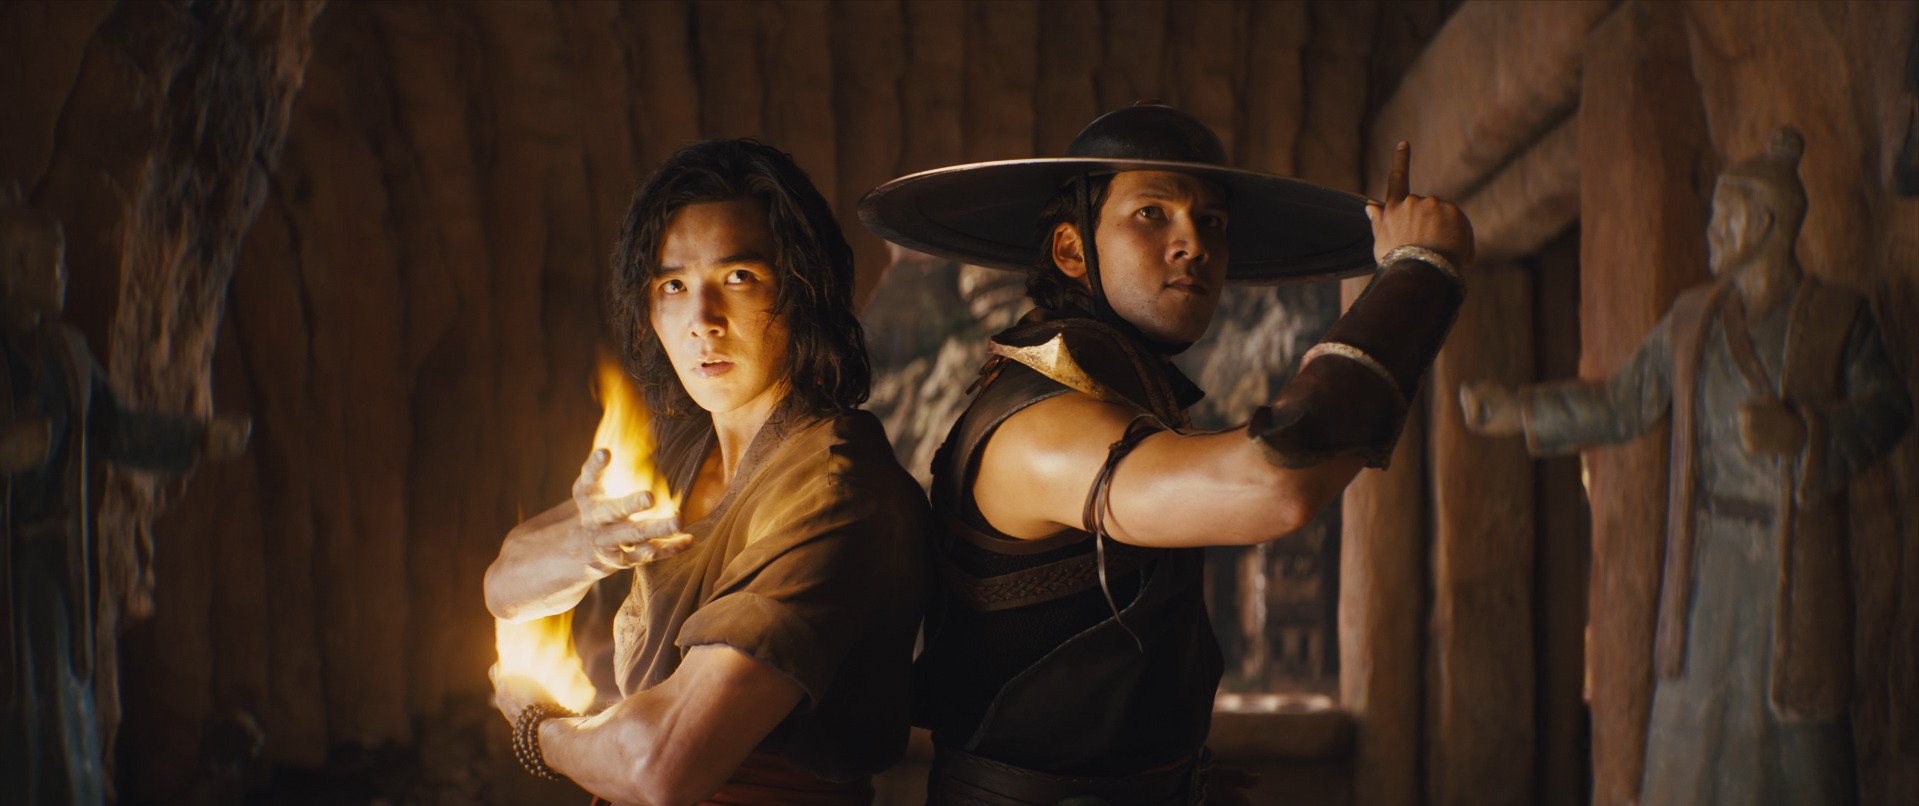 Liu Kang and Kung Lao in Mortal Kombat 2021 stand in a battle pose